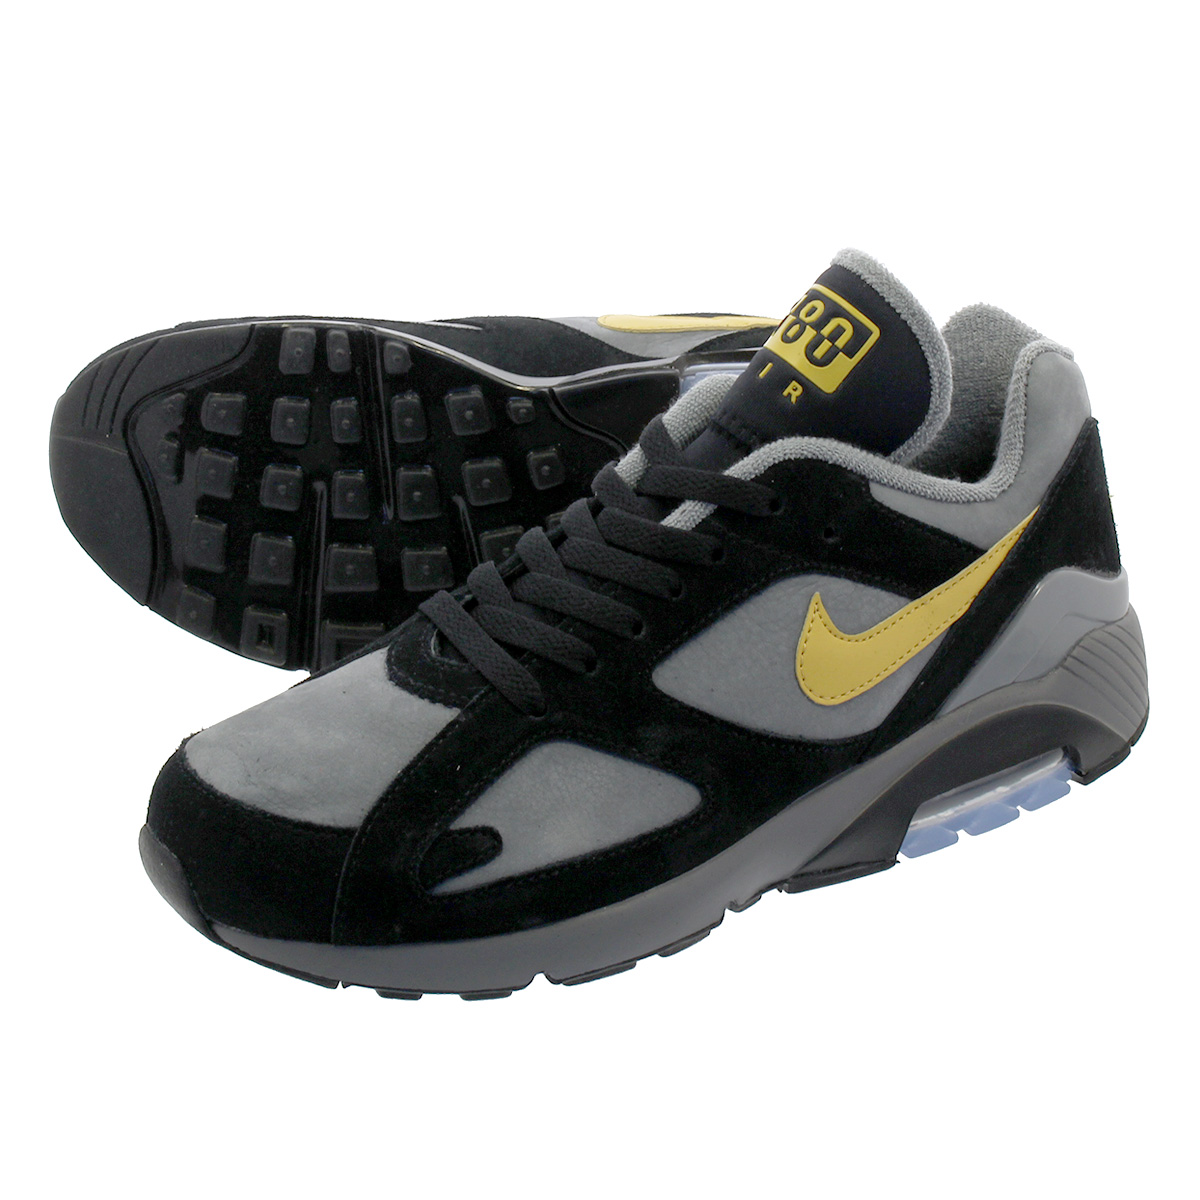 NIKE AIR MAX 180 Nike air max 180 COOL GREYWHEAT GOLDBLACK av7023 001